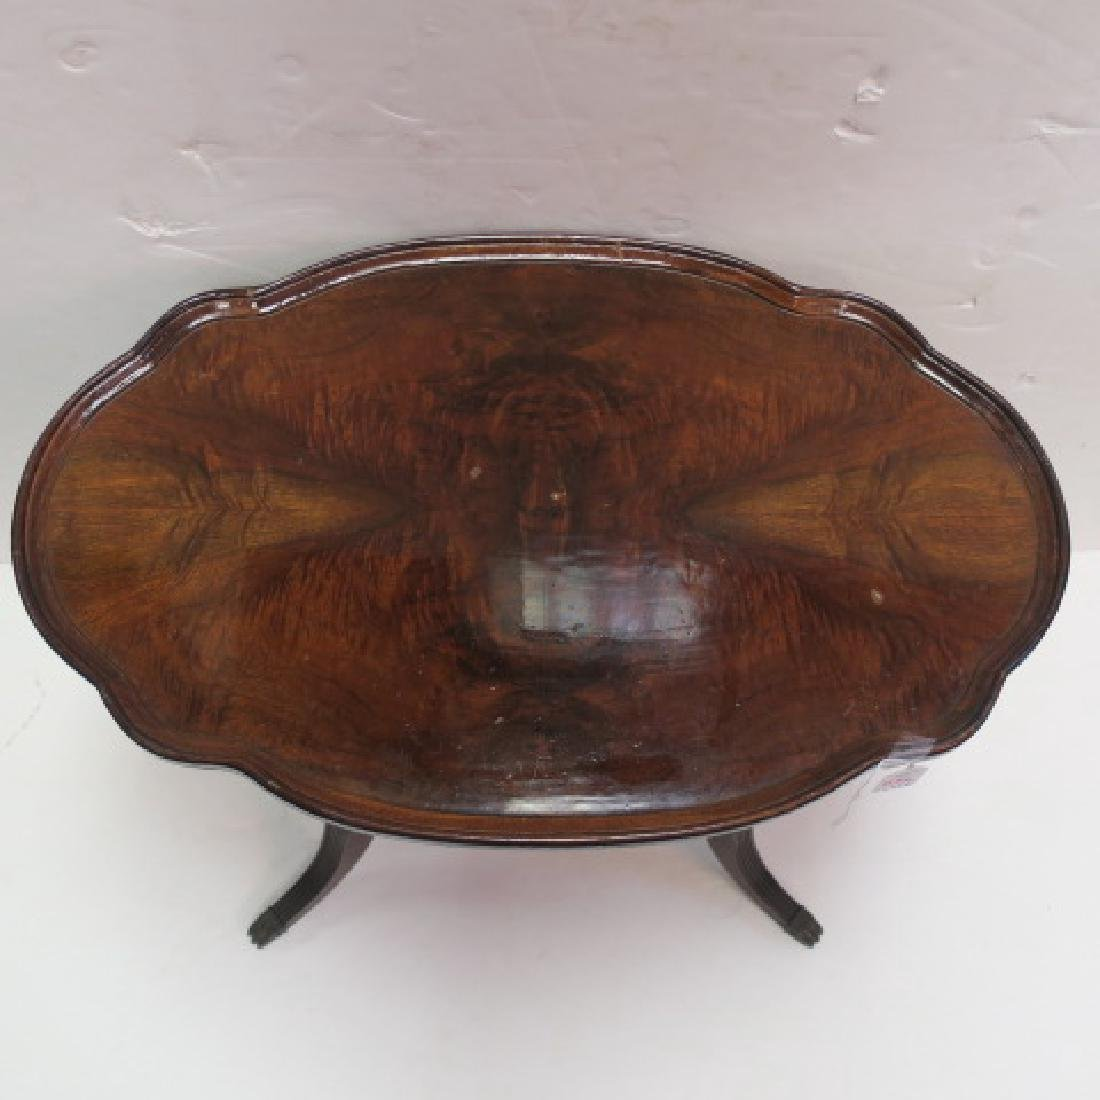 Figured Walnut Oval Two Tiered Side Table: - 2